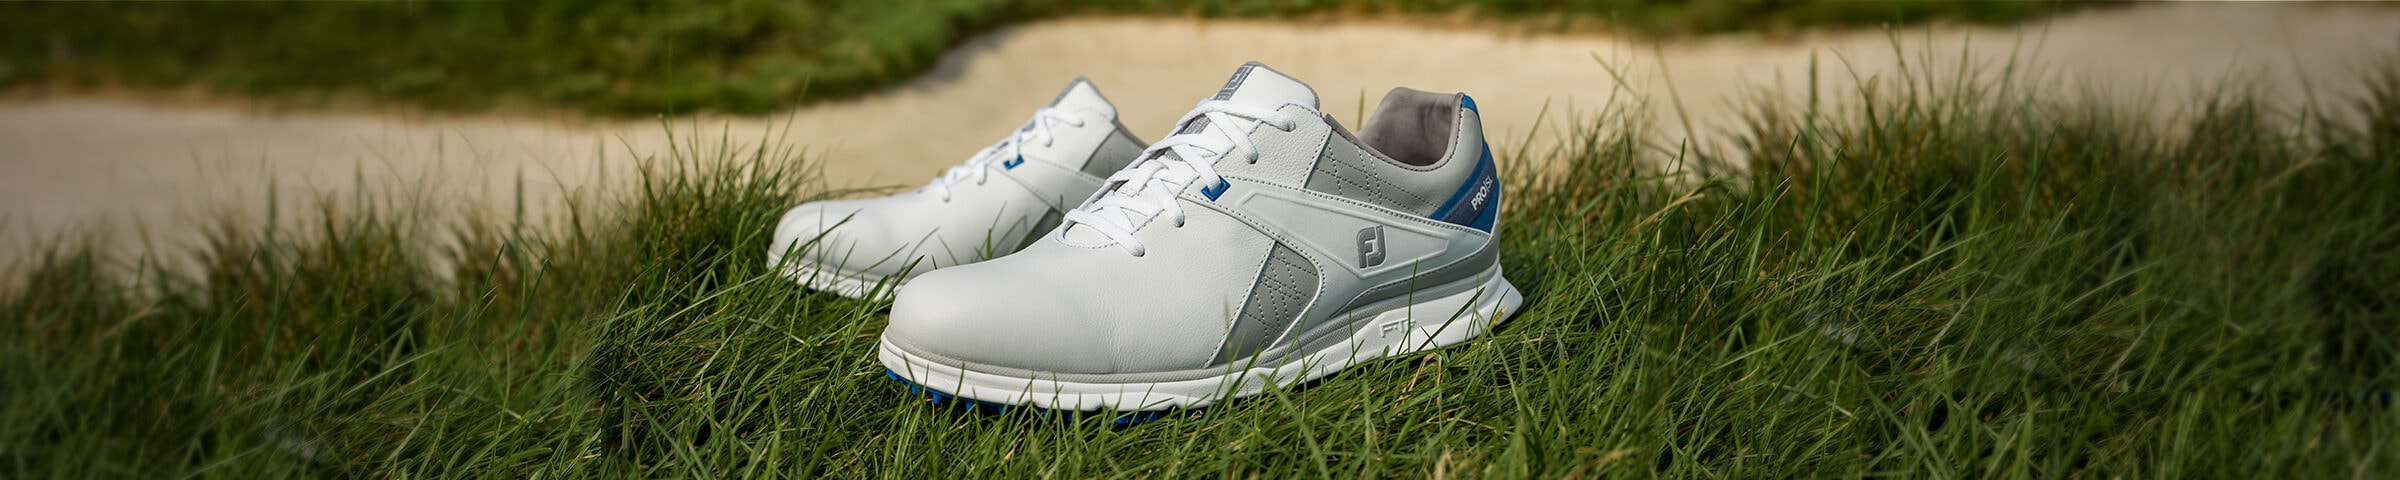 FootJoy New Arrivals - Men